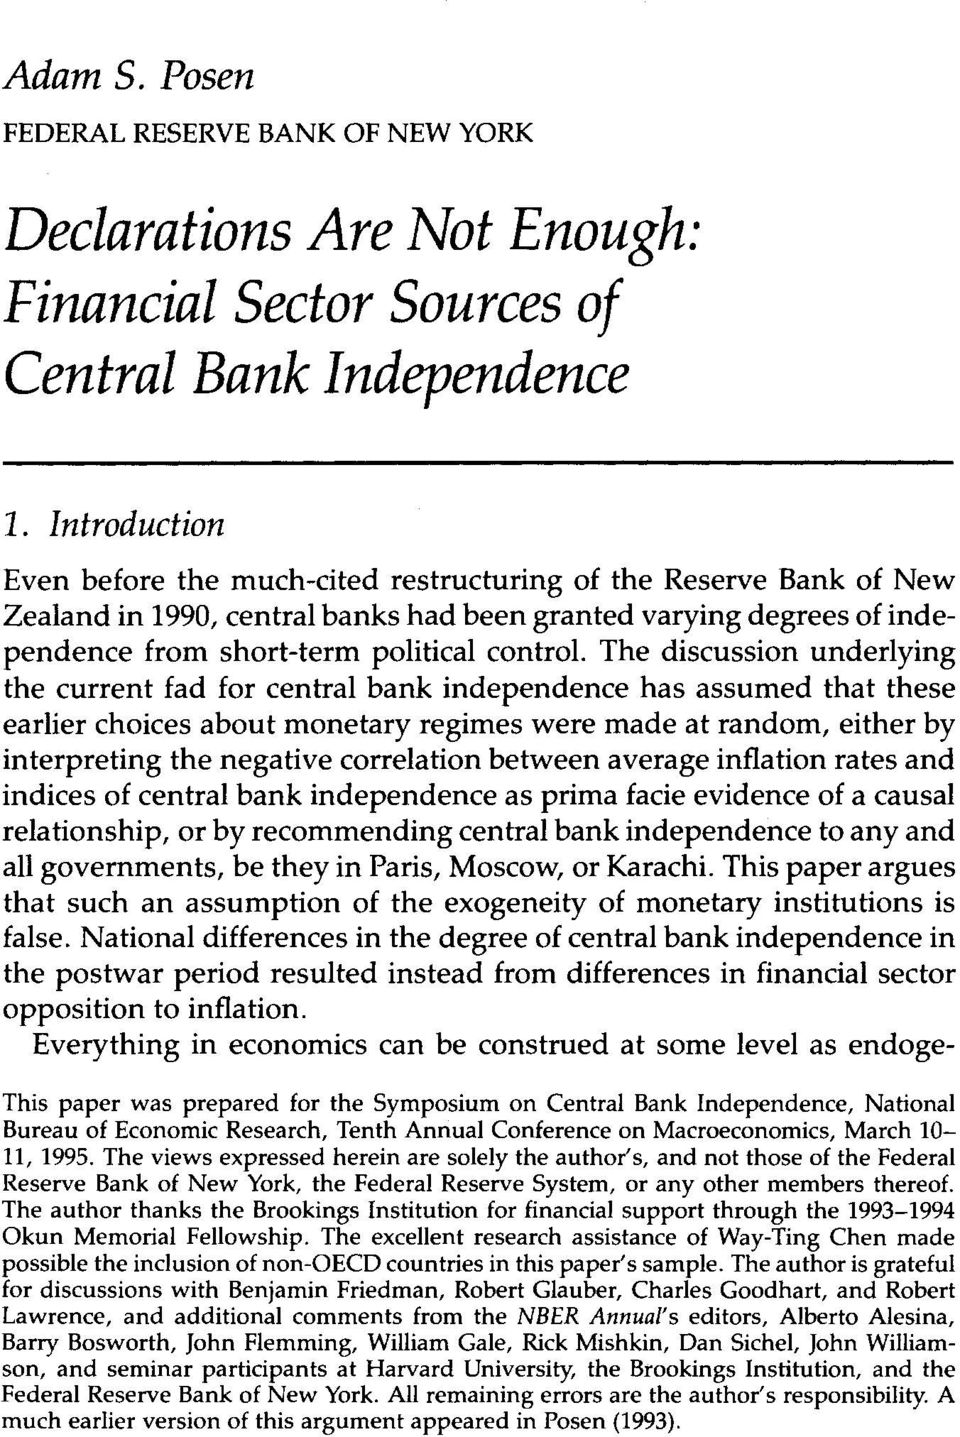 The discussion underlying the current fad for central bank independence has assumed that these earlier choices about monetary regimes were made at random, either by interpreting the negative